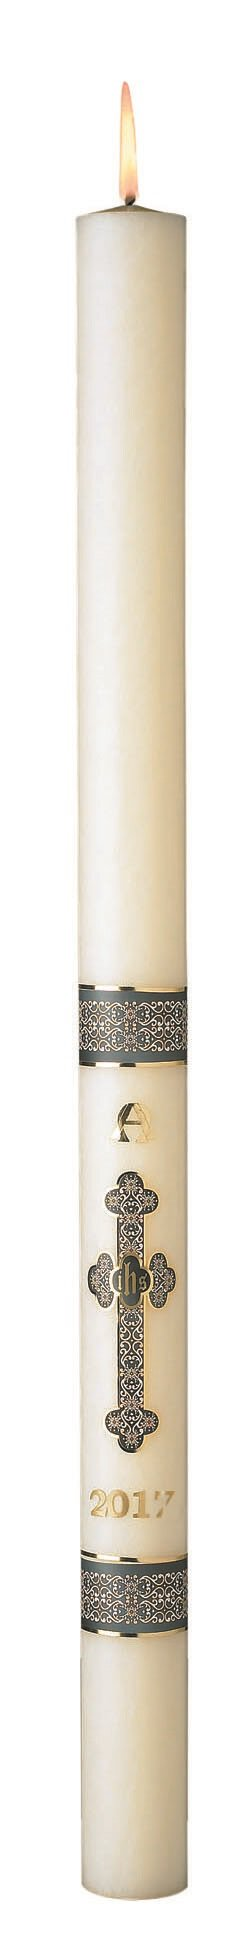 No 4 Special Budded Cross Paschal Candle